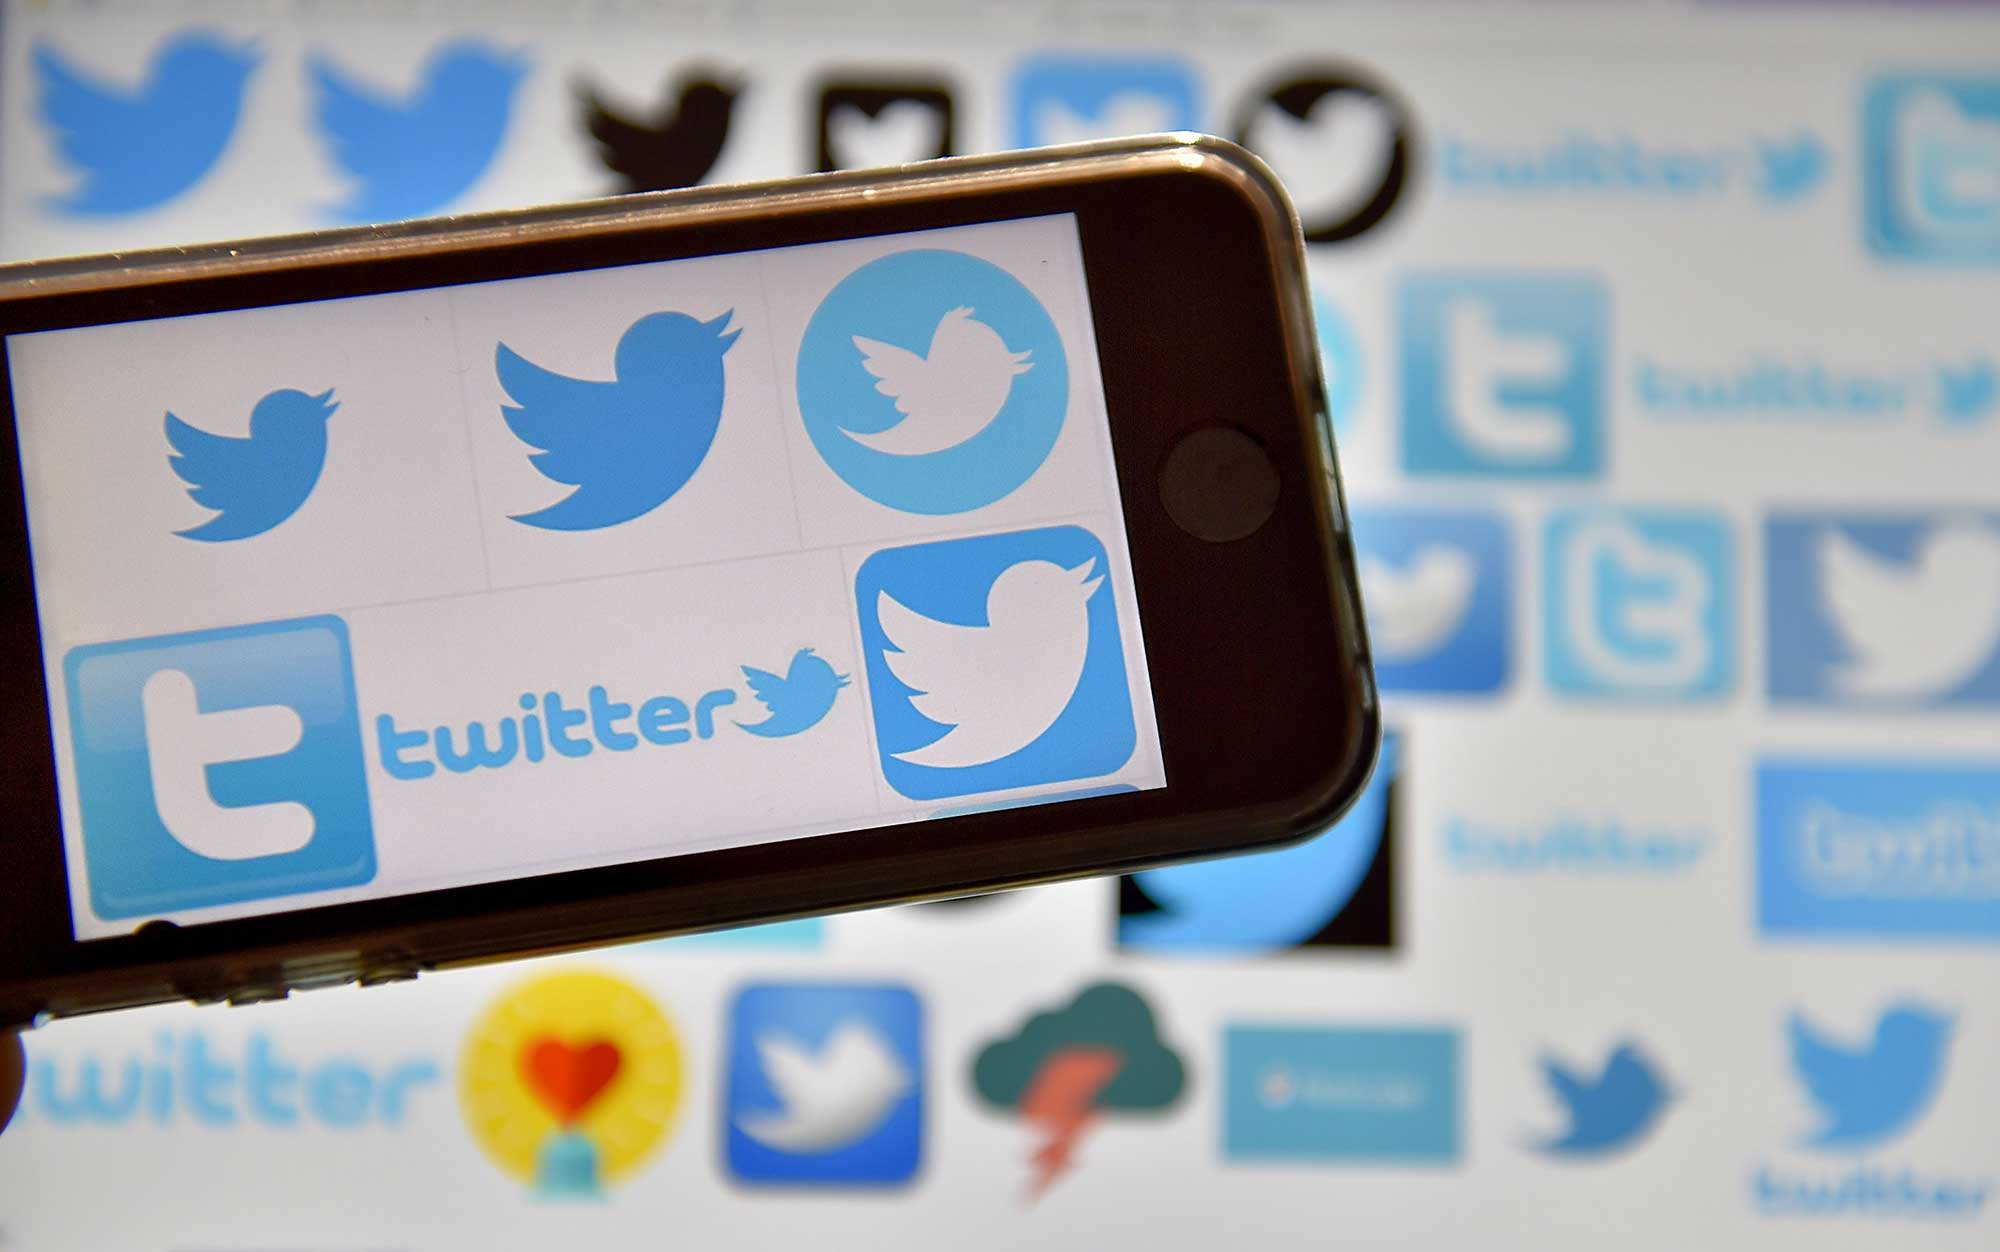 Sky News Arabia launches first live Twitter show